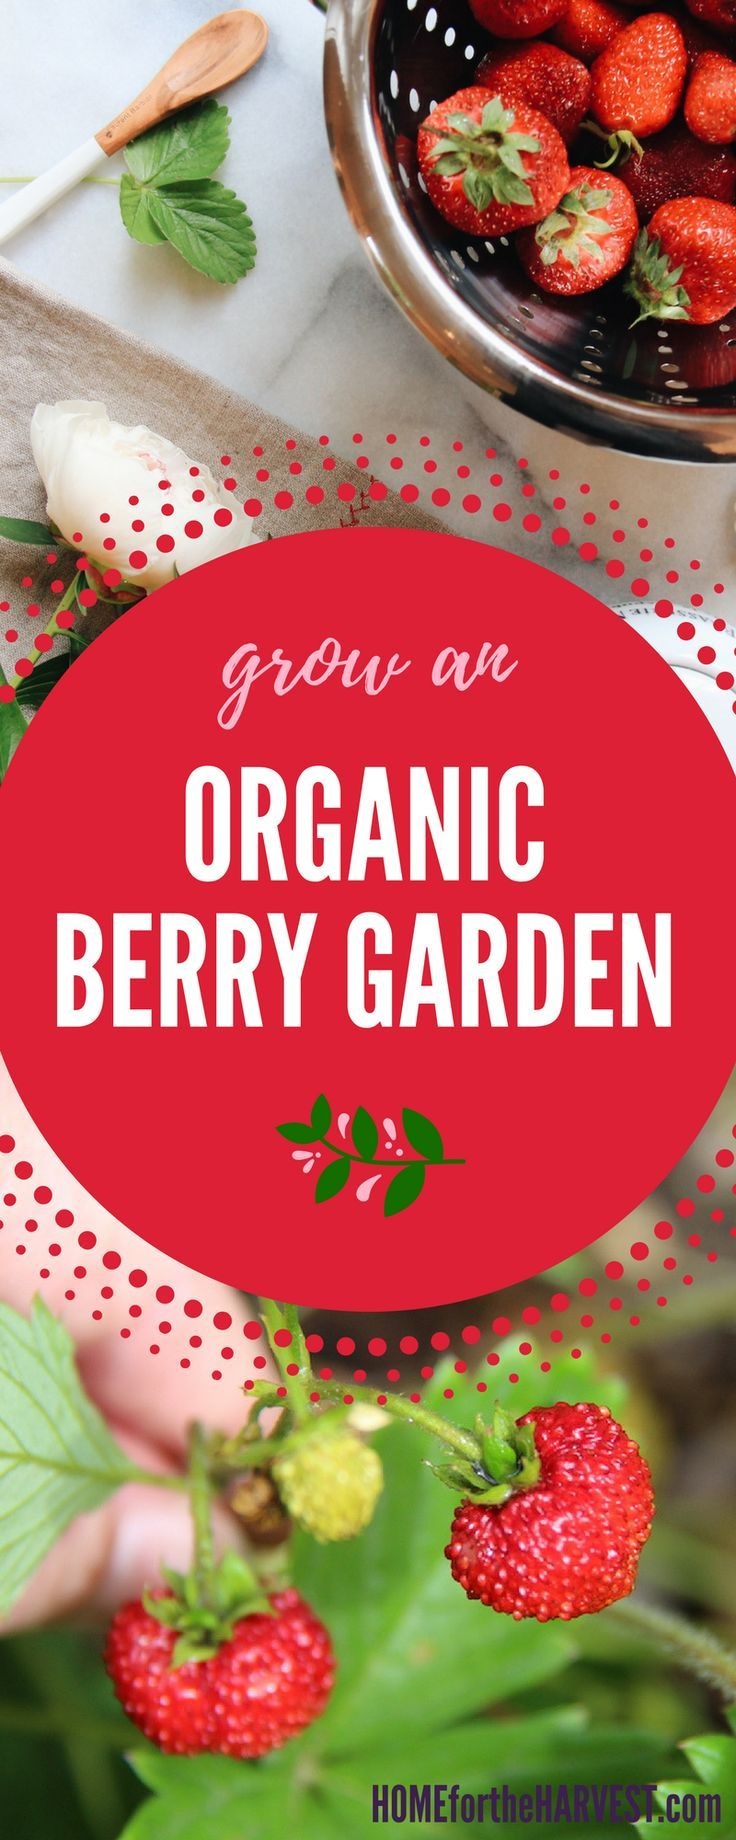 Organic berries are best when they're homegrown! They are so much sweeter and more delicious than store-bought berries. Here's an example of an organic berry garden. | Home for the Harvest #berrygarden #organicberries #berrygardens #organicfruit #organicgardening #gardening